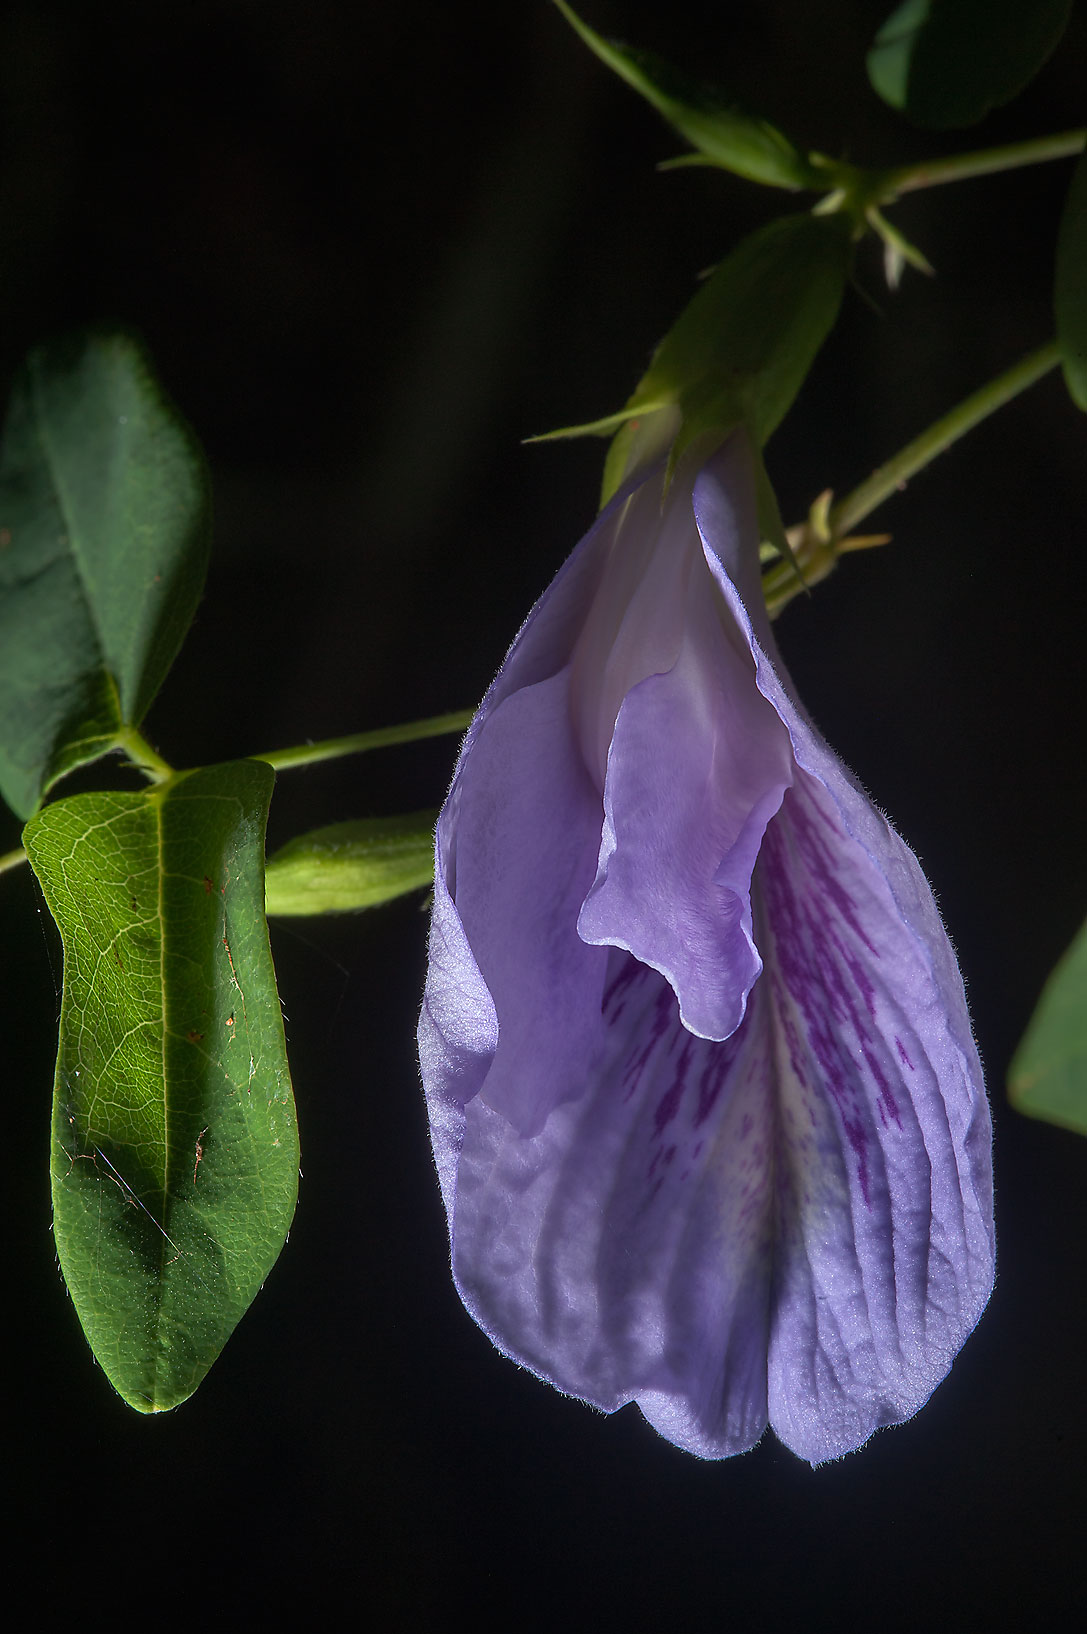 Flower of Pigeon wings (Clitoria mariana) in Lick Creek Park. College Station, Texas